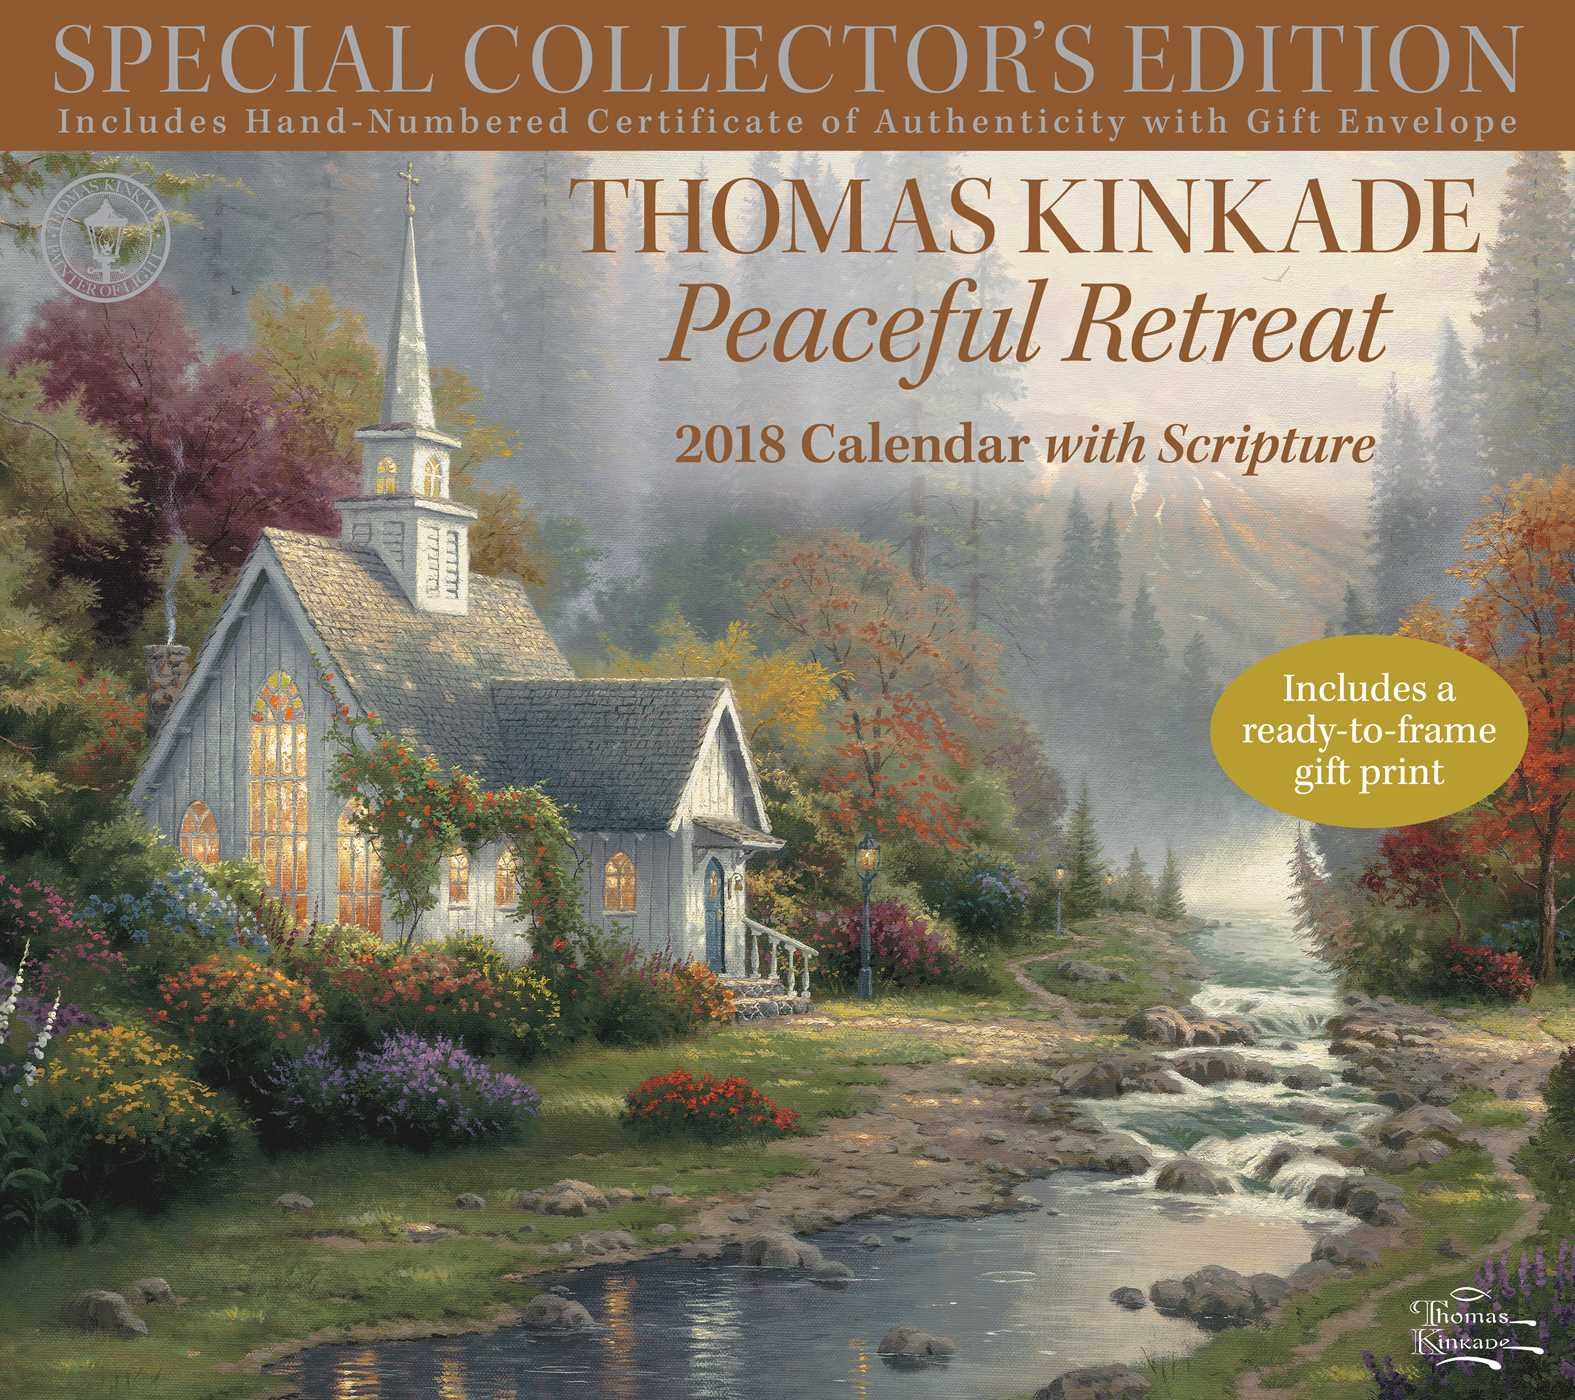 Thomas Kinkade Peaceful Retreat With Scripture 2018 Calendar (Anglais) Calendrier – Calendrier mural, 1 août 2017 Andrews McMeel Publishing 1449482910 Relating to religious groups NON-CLASSIFIABLE